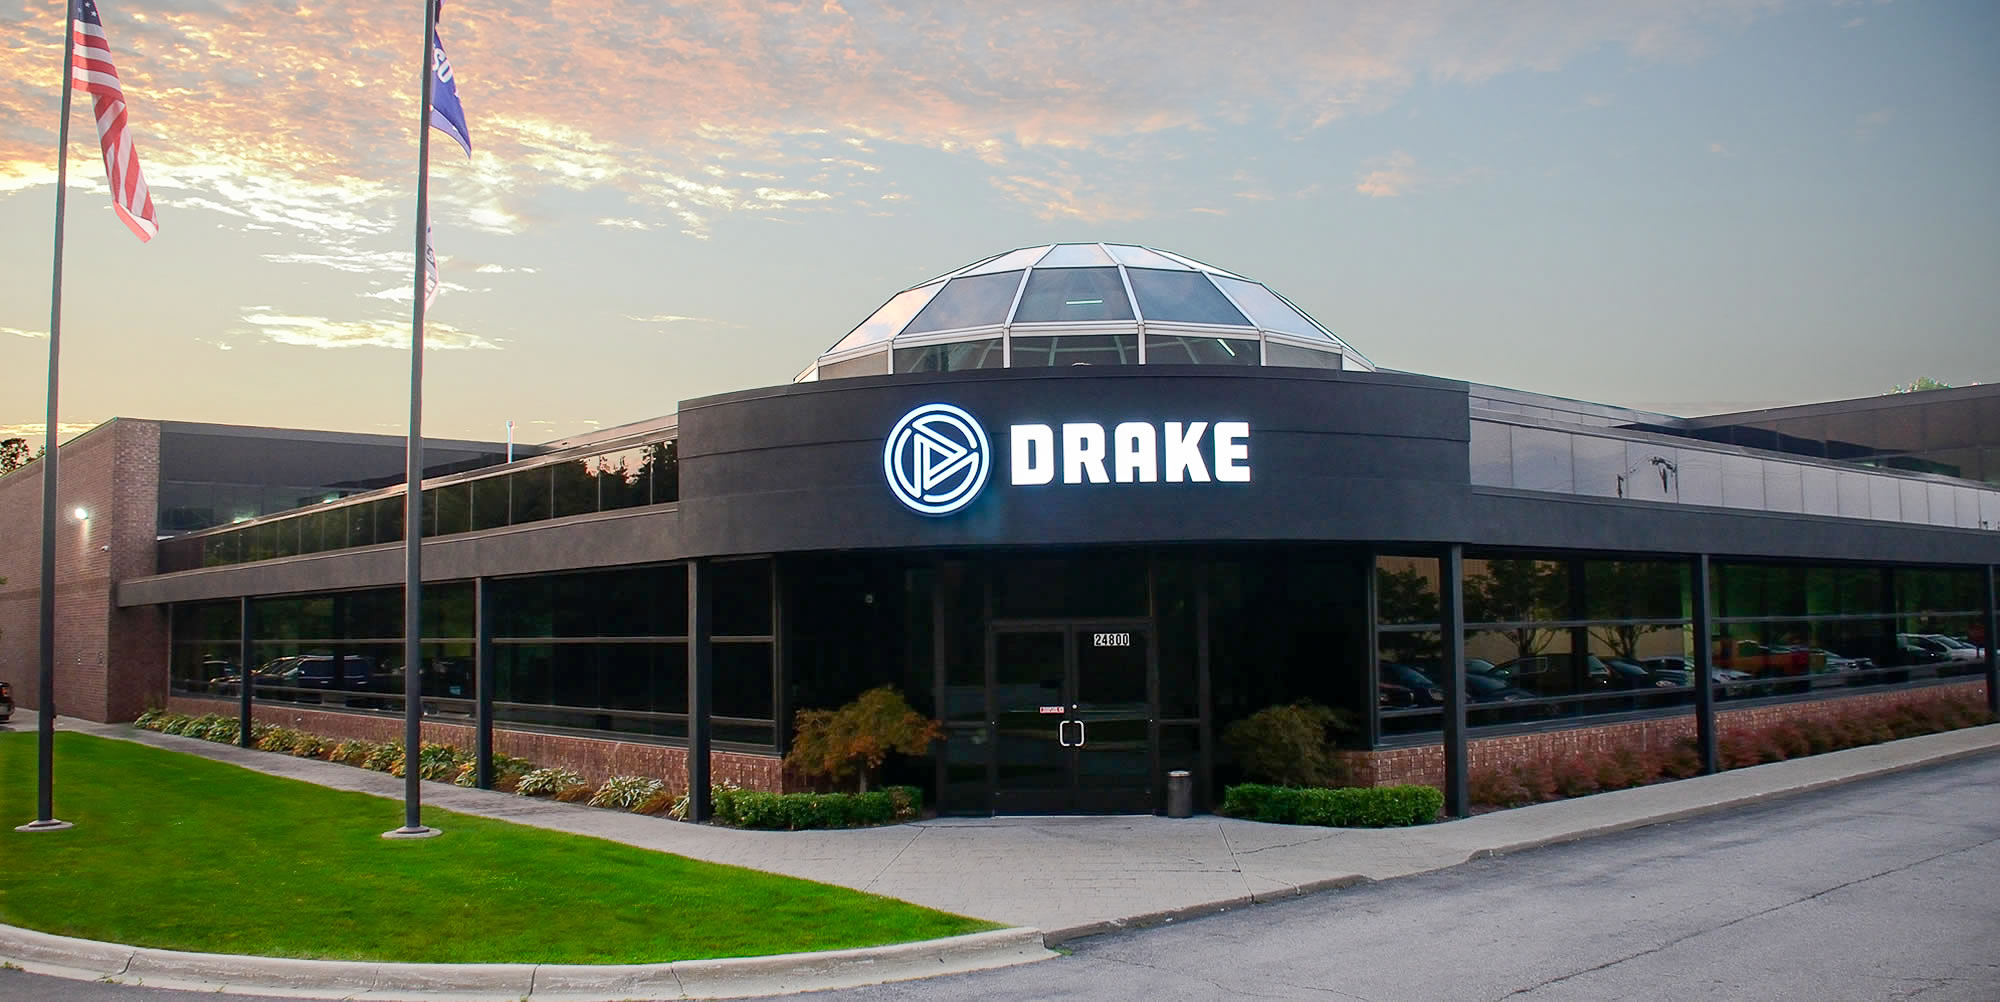 Drake Enteprises - Torque Transferring Products